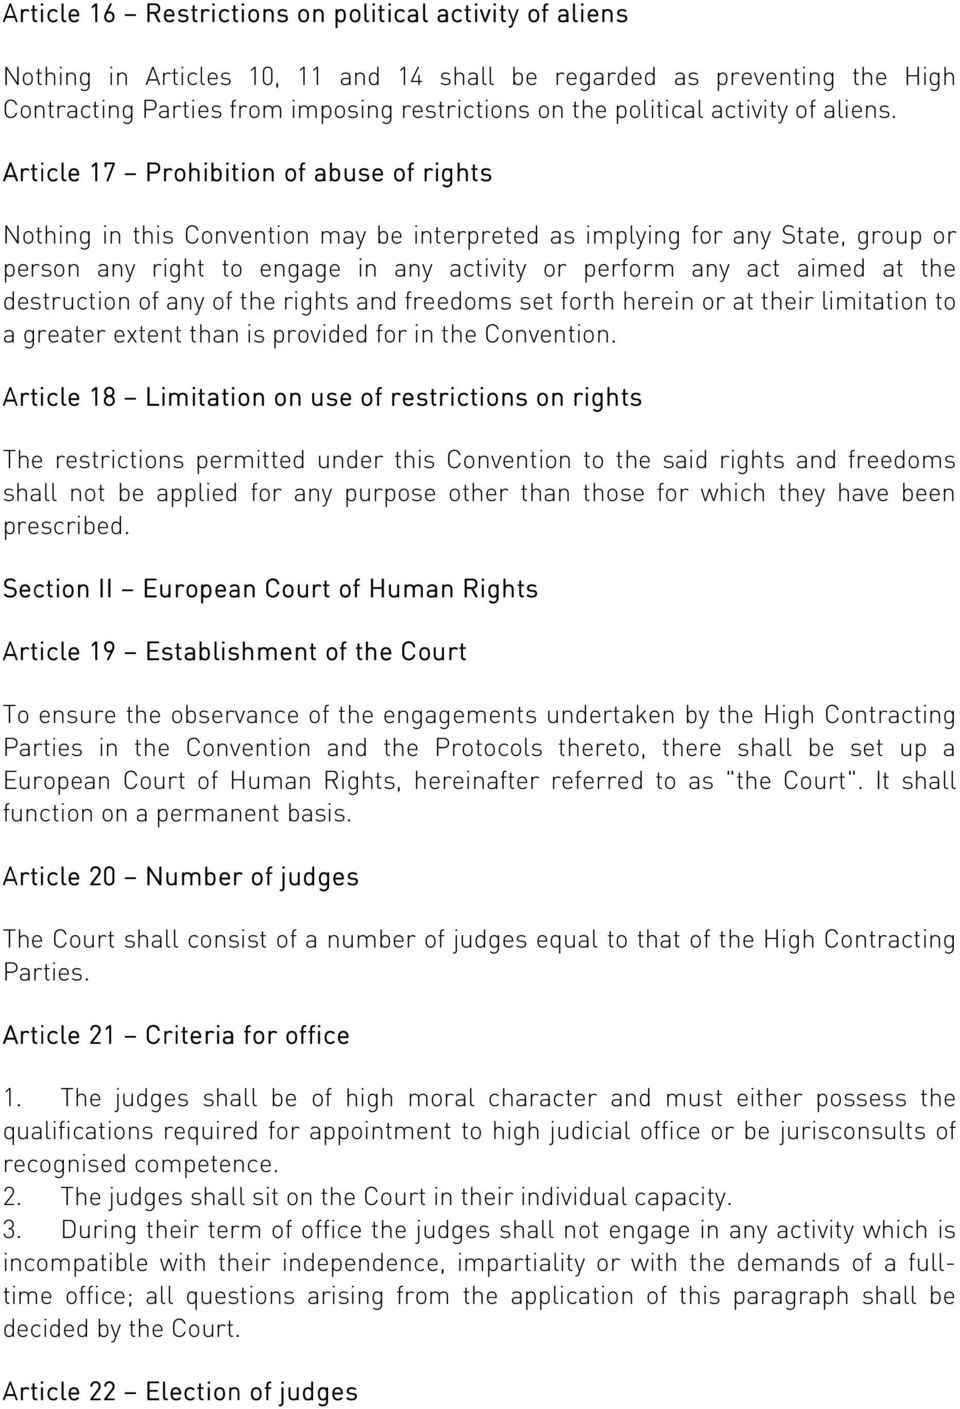 Article 17 Prohibition of abuse of rights Nothing in this Convention may be interpreted as implying for any State, group or person any right to engage in any activity or perform any act aimed at the